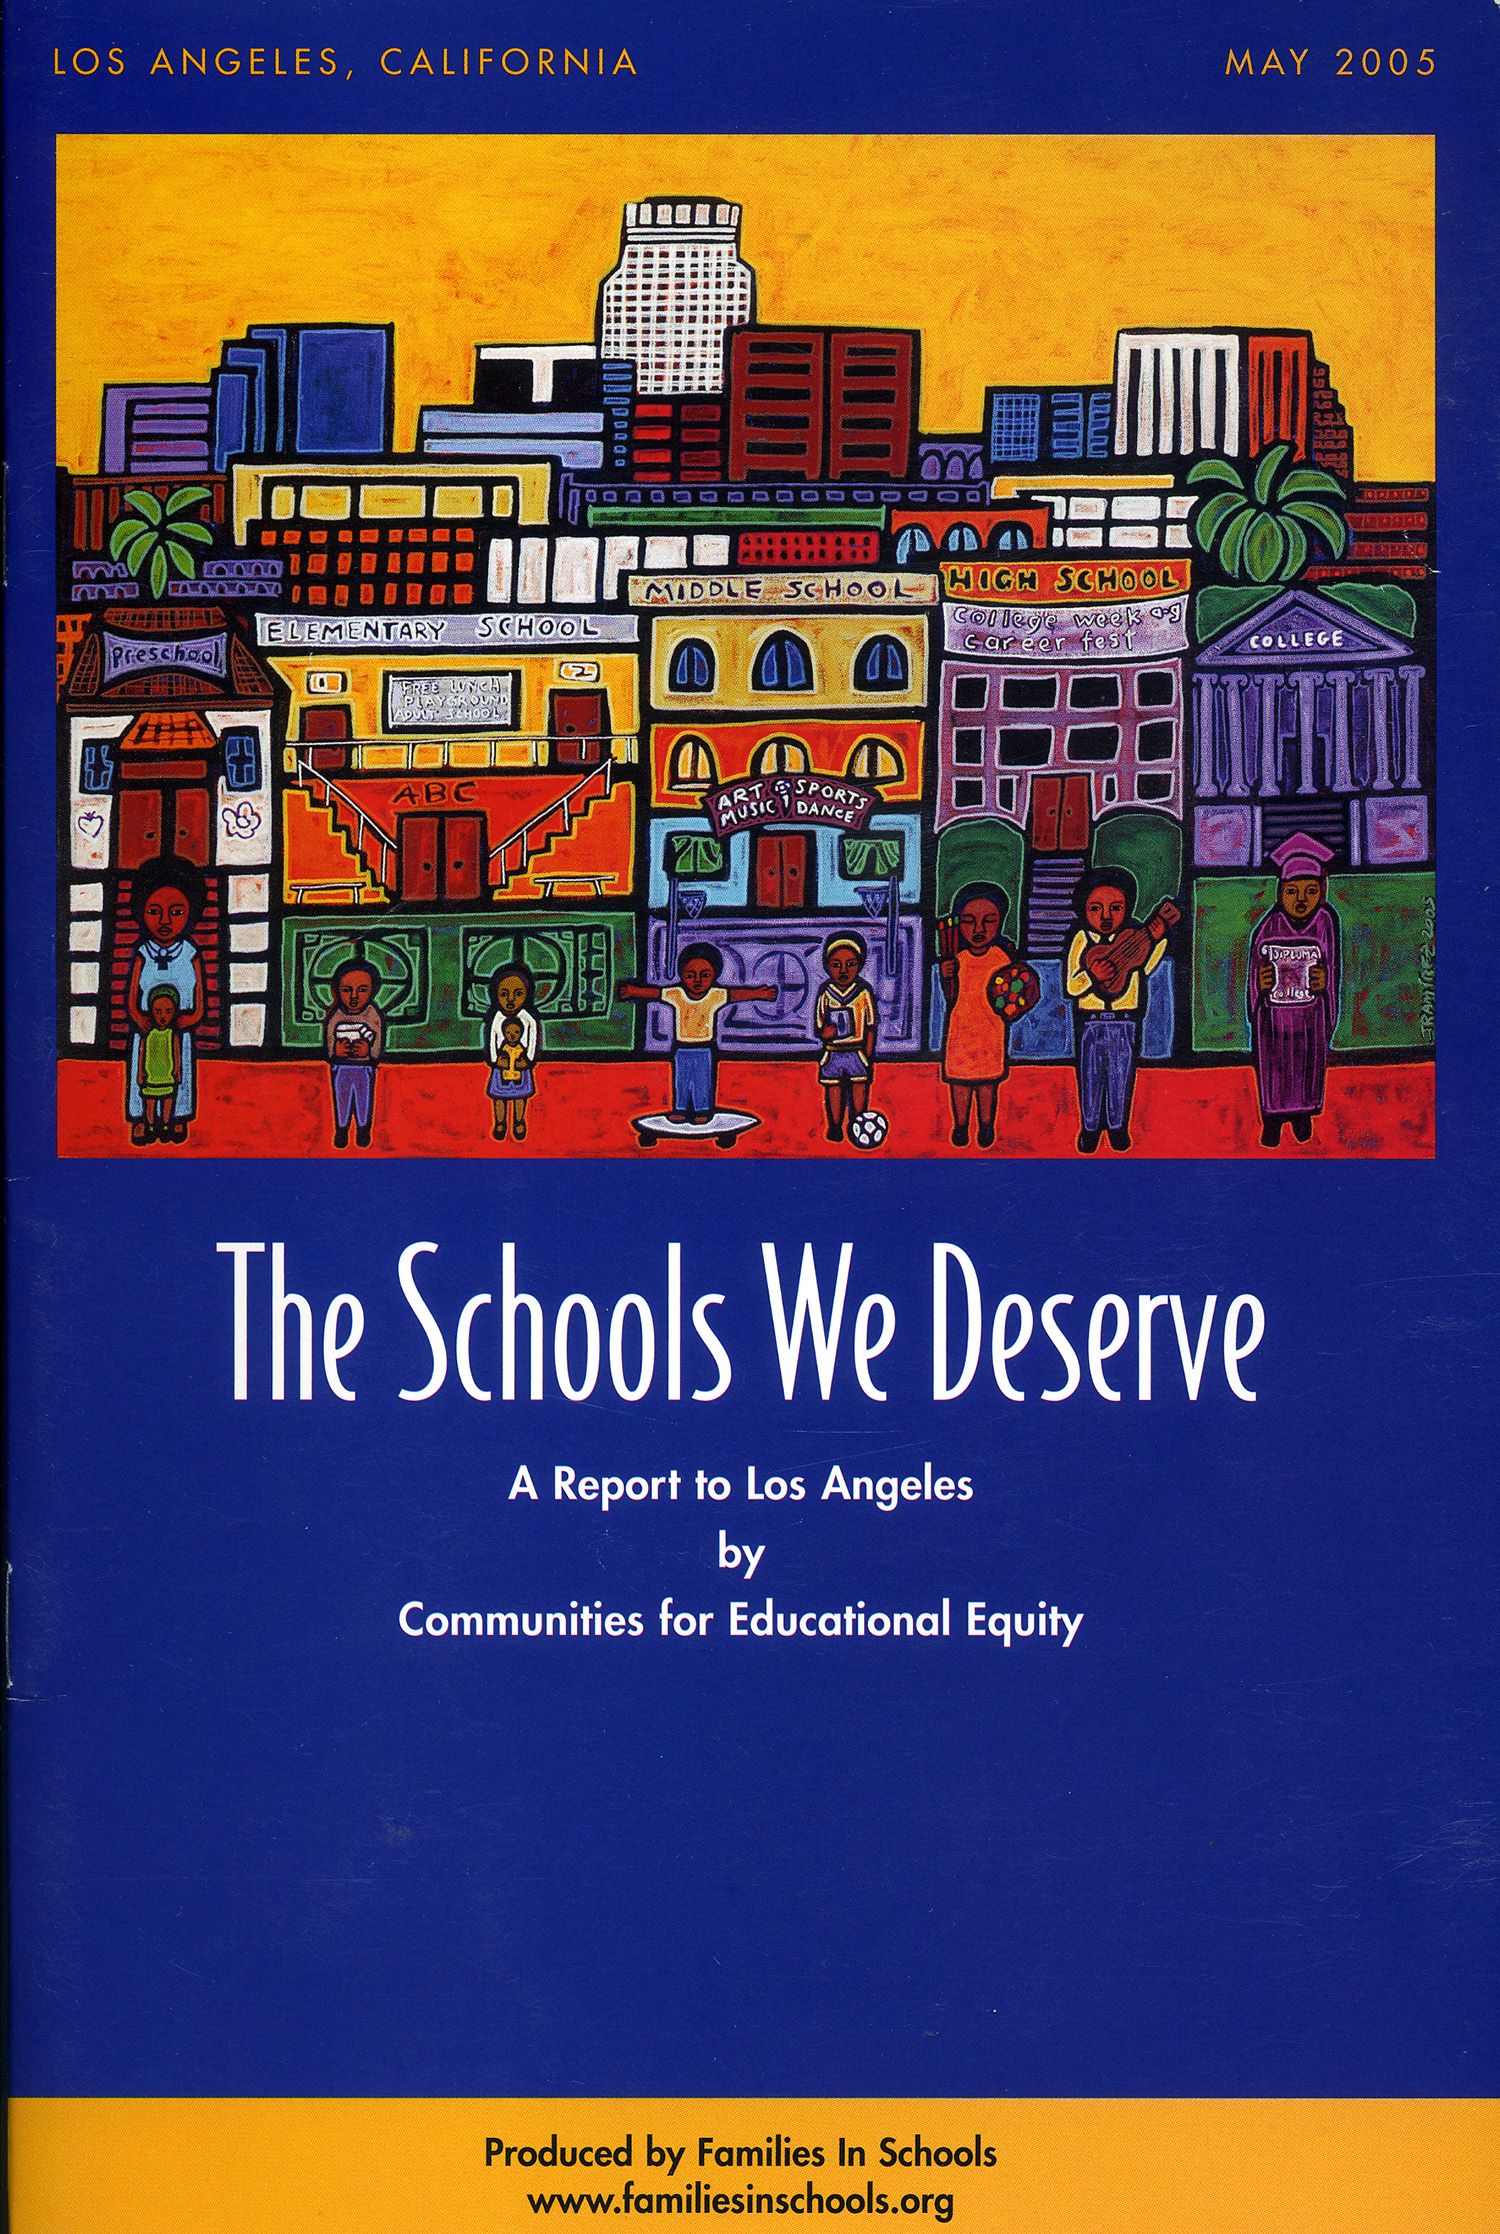 Education used for The Schools We Deserve report, 2005.